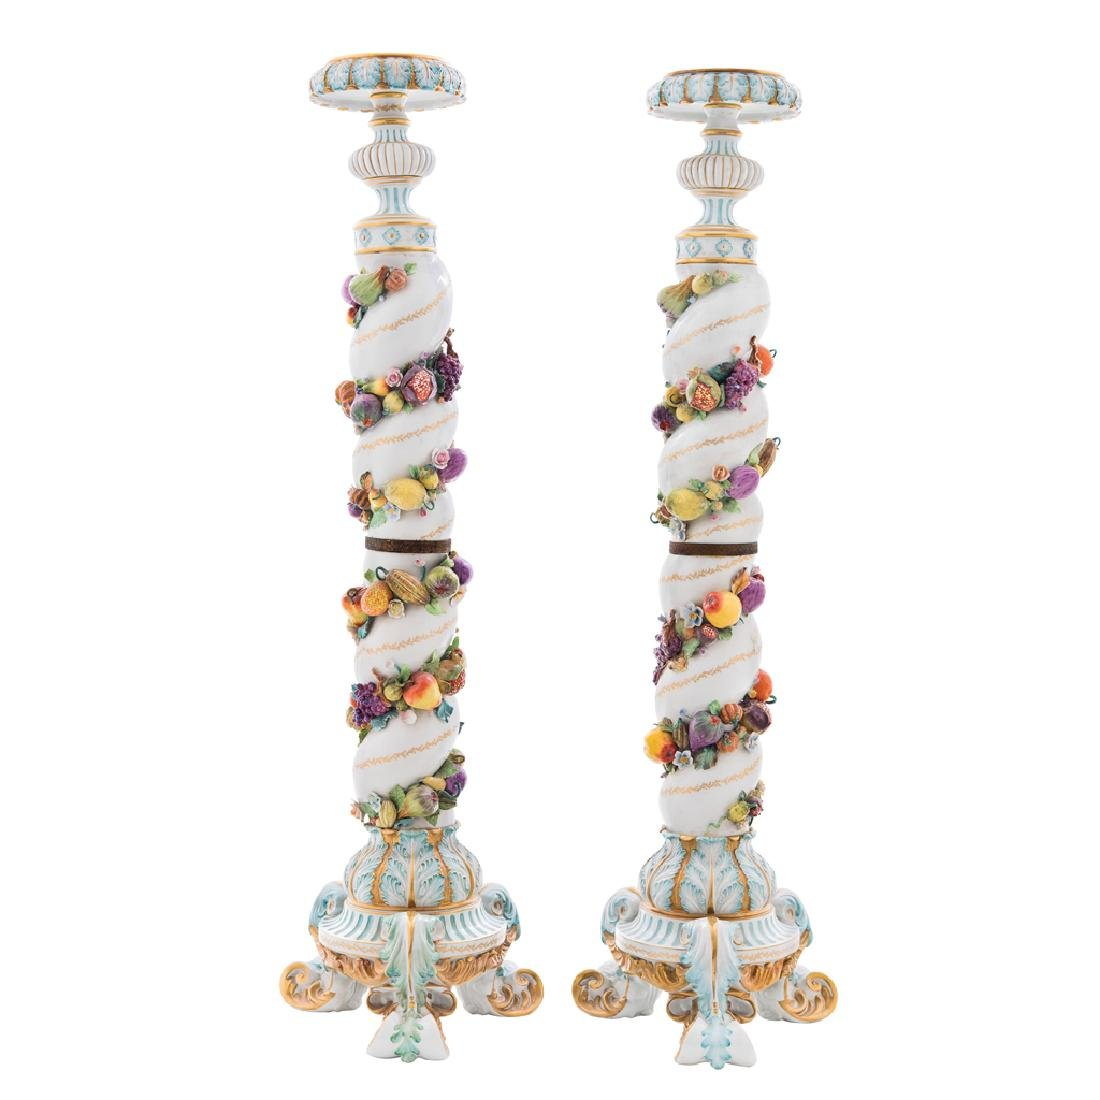 A PAIR OF COLUMNS. LATE 19th CENTURY. Sèvres style